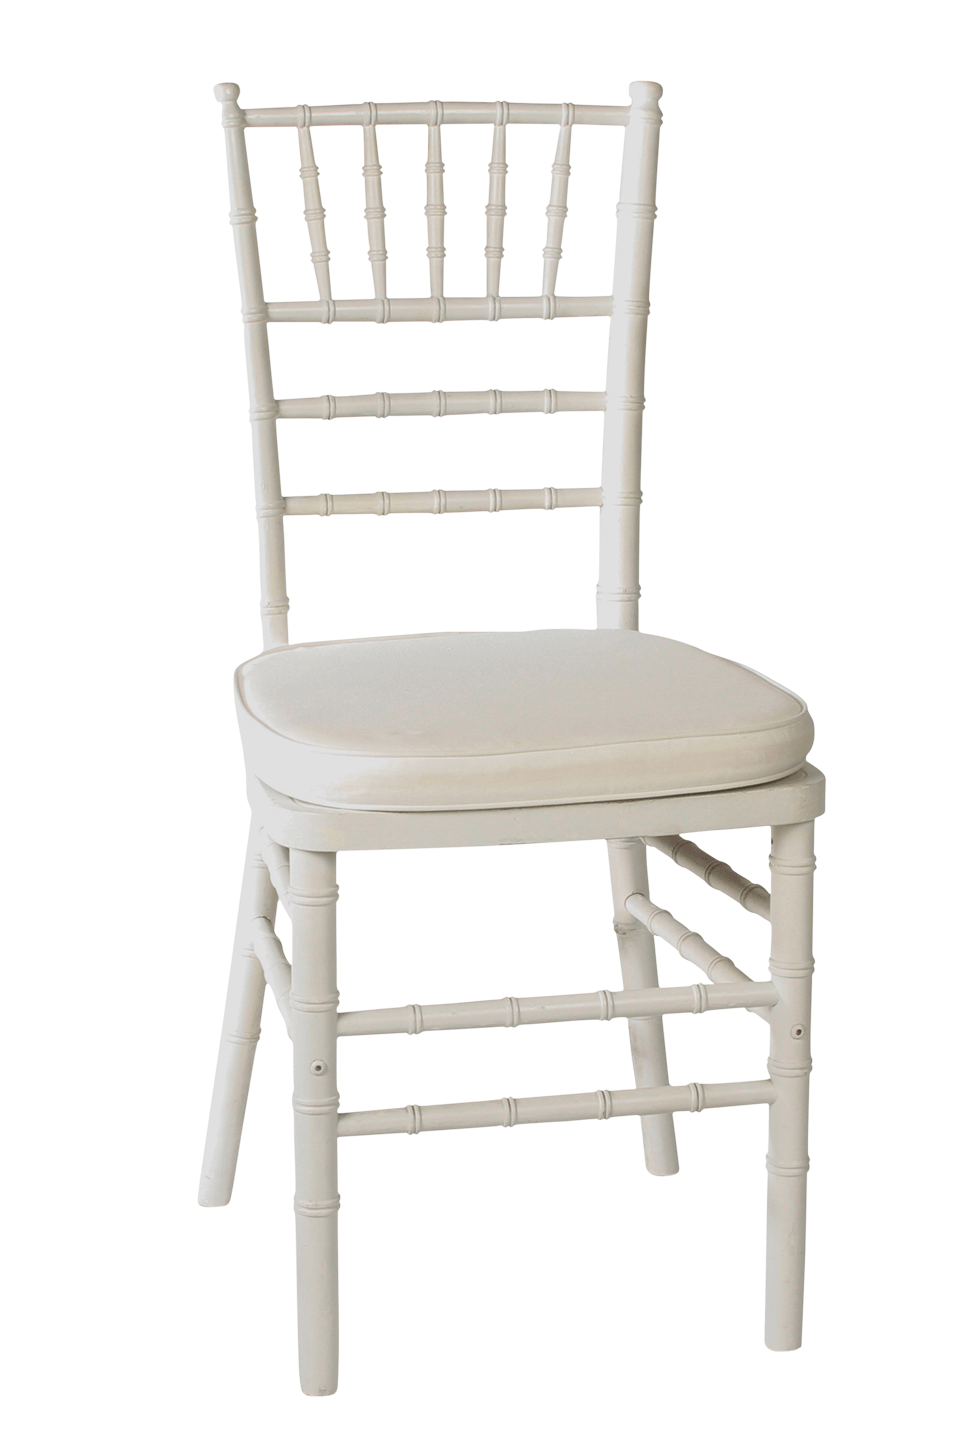 Chavari White Chair Rental Bright Rentals